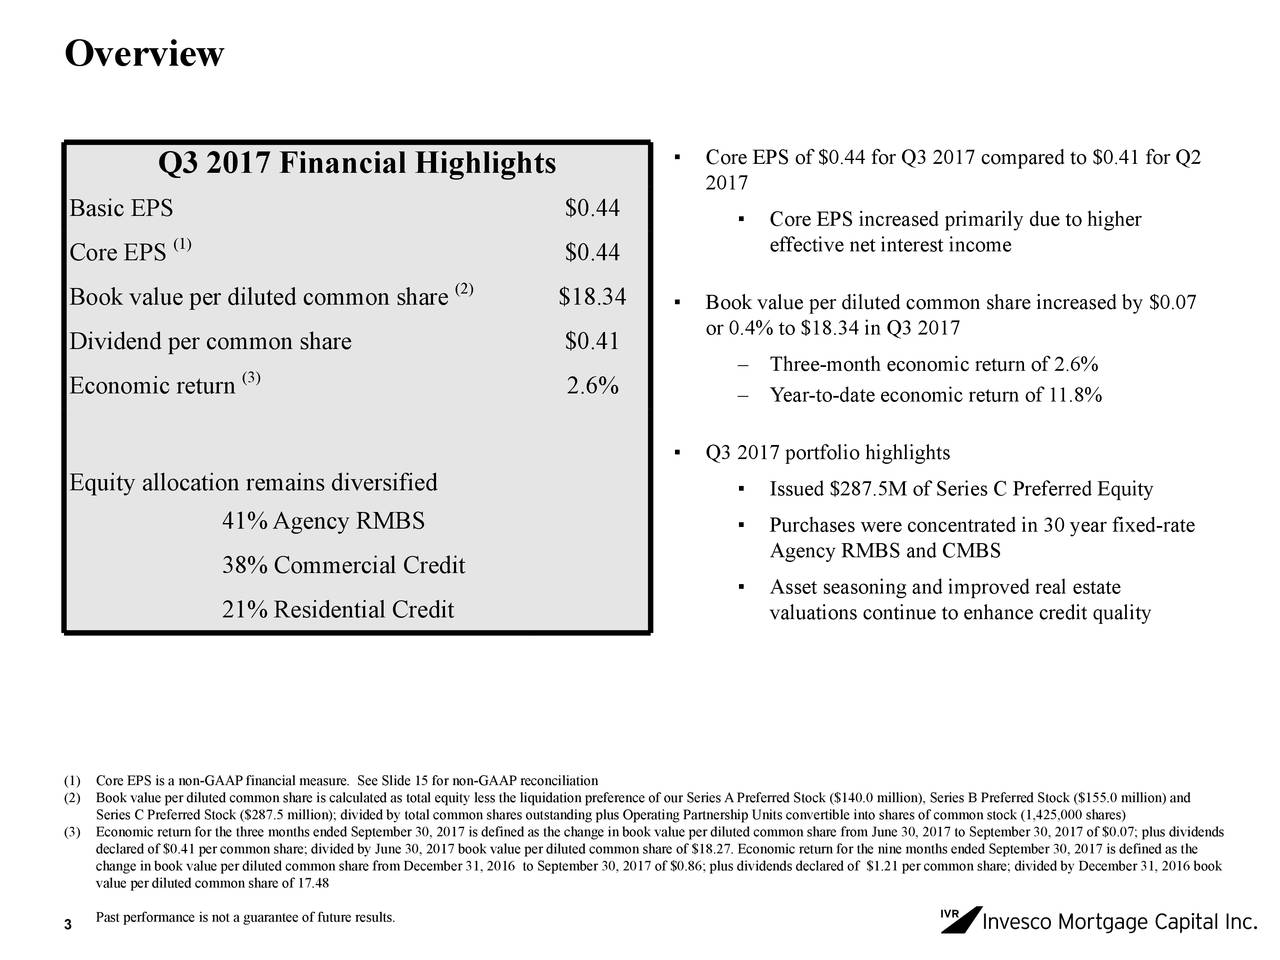 Q3 2017 Financial Highlights ▪ Core EPS of $0.44 for Q3 2017 compared to $0.41 for Q2 2017 Basic EPS $0.44 ▪ Core EPS increased primarily due to higher Core EPS (1) $0.44 effective net interest income Book value per diluted common share (2) $18.34 ▪ Book value per diluted common share increased by $0.07 Dividend per common share $0.41 or 0.4% to $18.34 in Q3 2017 – Three-month economic return of 2.6% Economic return (3) 2.6% – Year-to-date economic return of 11.8% ▪ Q3 2017 portfolio highlights Equity allocation remains diversified ▪ Issued $287.5M of Series C Preferred Equity 41%Agency RMBS ▪ Purchases were concentrated in 30 year fixed-rate Agency RMBS and CMBS 38% Commercial Credit ▪ Asset seasoning and improved real estate 21% Residential Credit valuations continue to enhance credit quality (1) Core EPS is a non-GAAP financial measure. See Slide 15 for non-GAAP reconciliation (2) Series C Preferred Stock ($287.5 million); divided by total common shares outstanding plus Operating Partnership Units convertible into shares of common stock (1,425,000 shares)0 million) and (3) Economic return for the three months ended September 30, 2017 is defined as the change in book value per diluted common share from June 30, 2017 to September 30, 2017 of $0.07; plus dividends declared of $0.41 per common share; divided by June 30, 2017 book value per diluted common share of $18.27. Economic return for the nine months ended September 30, 2017 is defined as the change in book value per diluted common share from December 31, 2016 to September 30, 2017 of $0.86; plus dividends declared of $1.21 per common share; divided by December 31, 2016 book value per diluted common share of 17.48 Past performance is not a guarantee of future results. 3